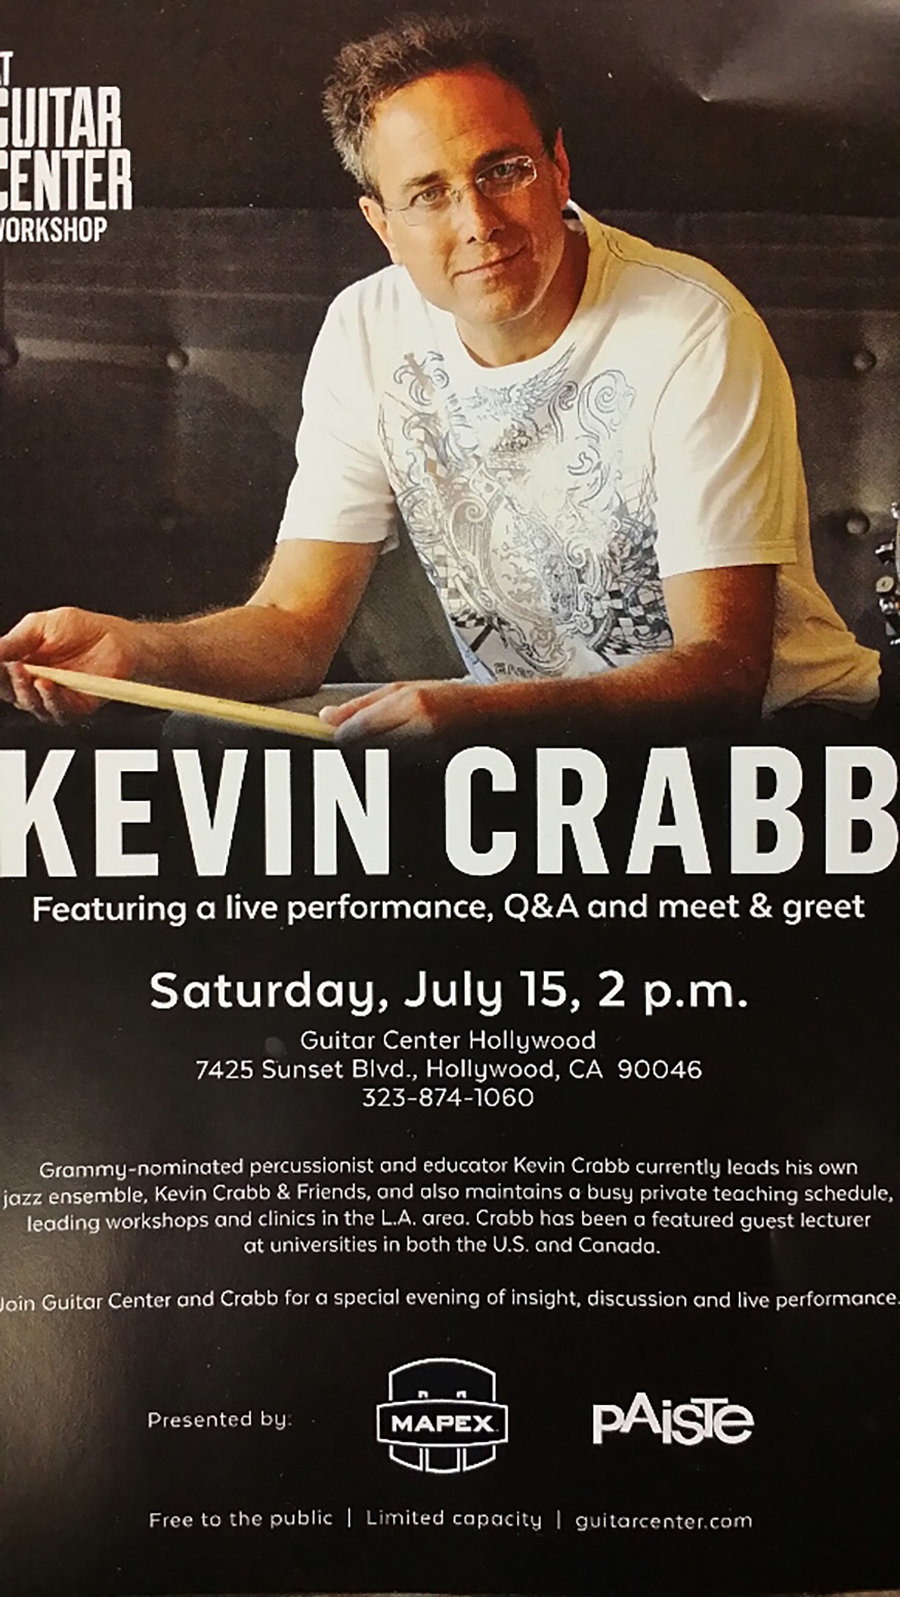 GUITAR CENTER WORKSHOP this SAT, July 15 @ 2PM, Hollywood, CA